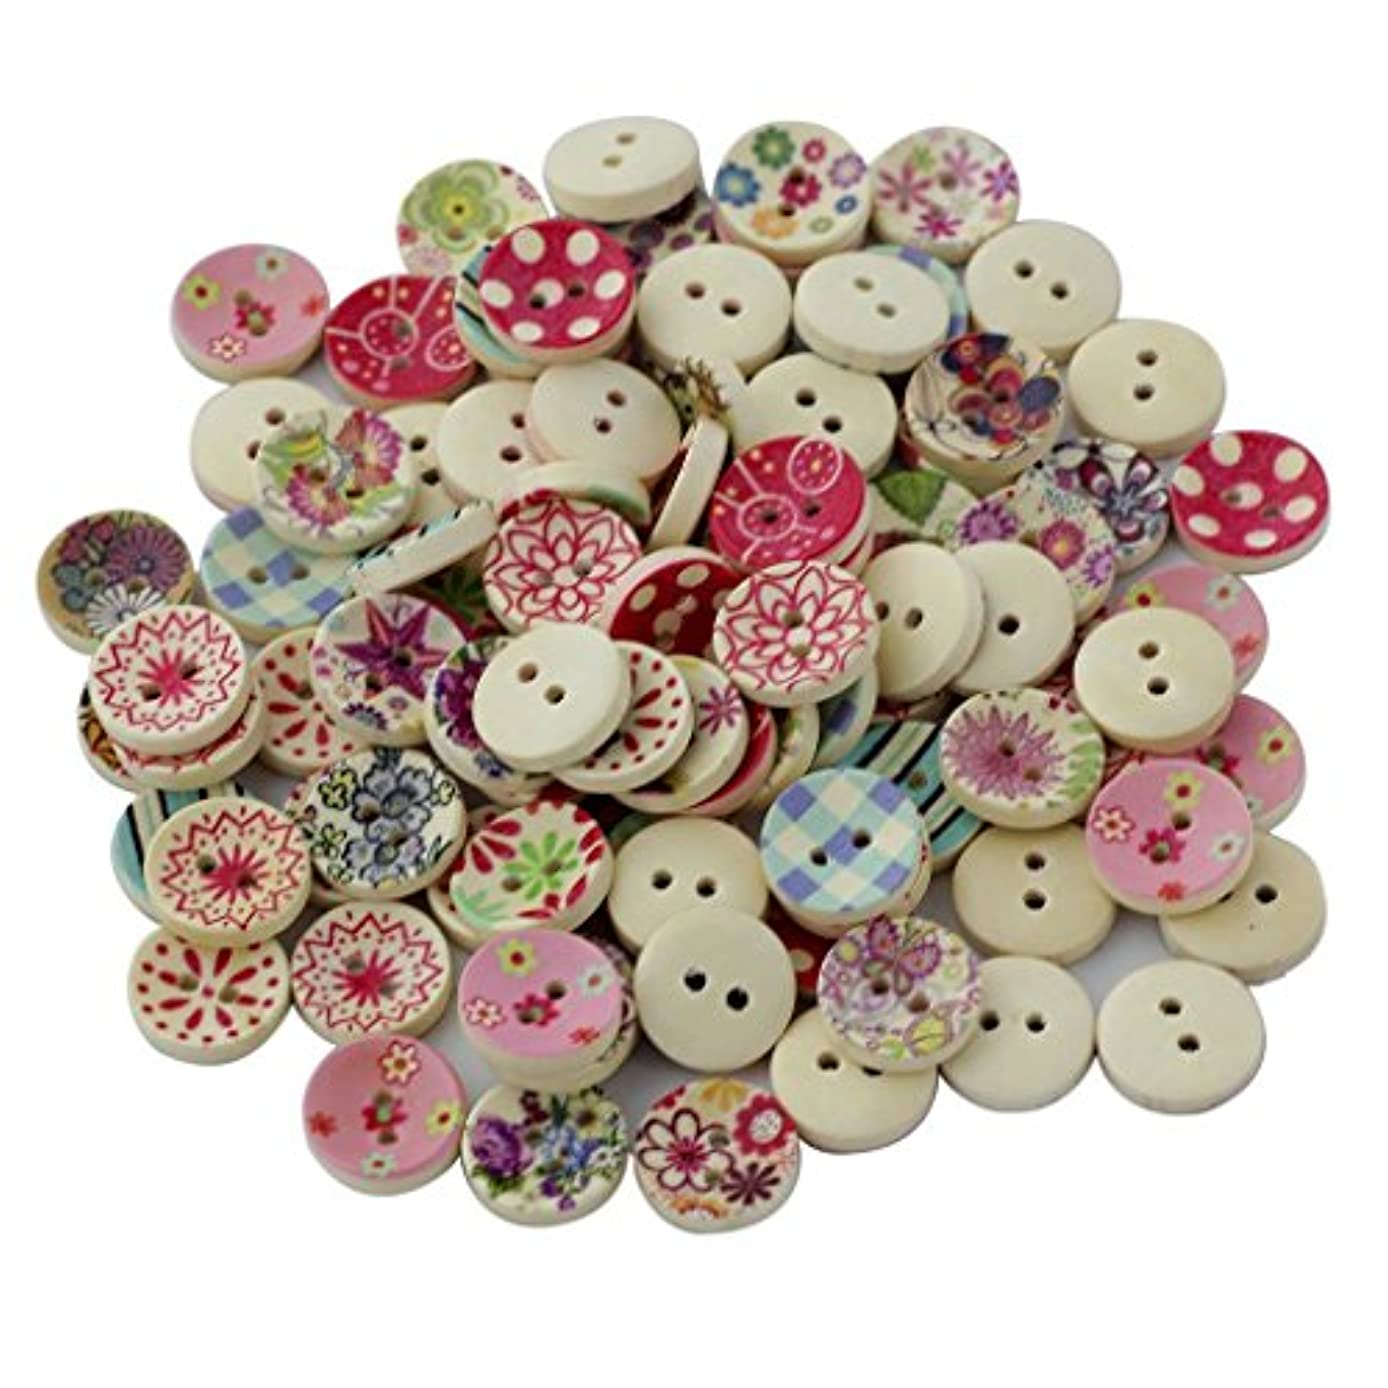 Wooden Buttons Round Vintage Buttons for Sewing and Crafting,100pcs Assorted 2 Holes Buttons